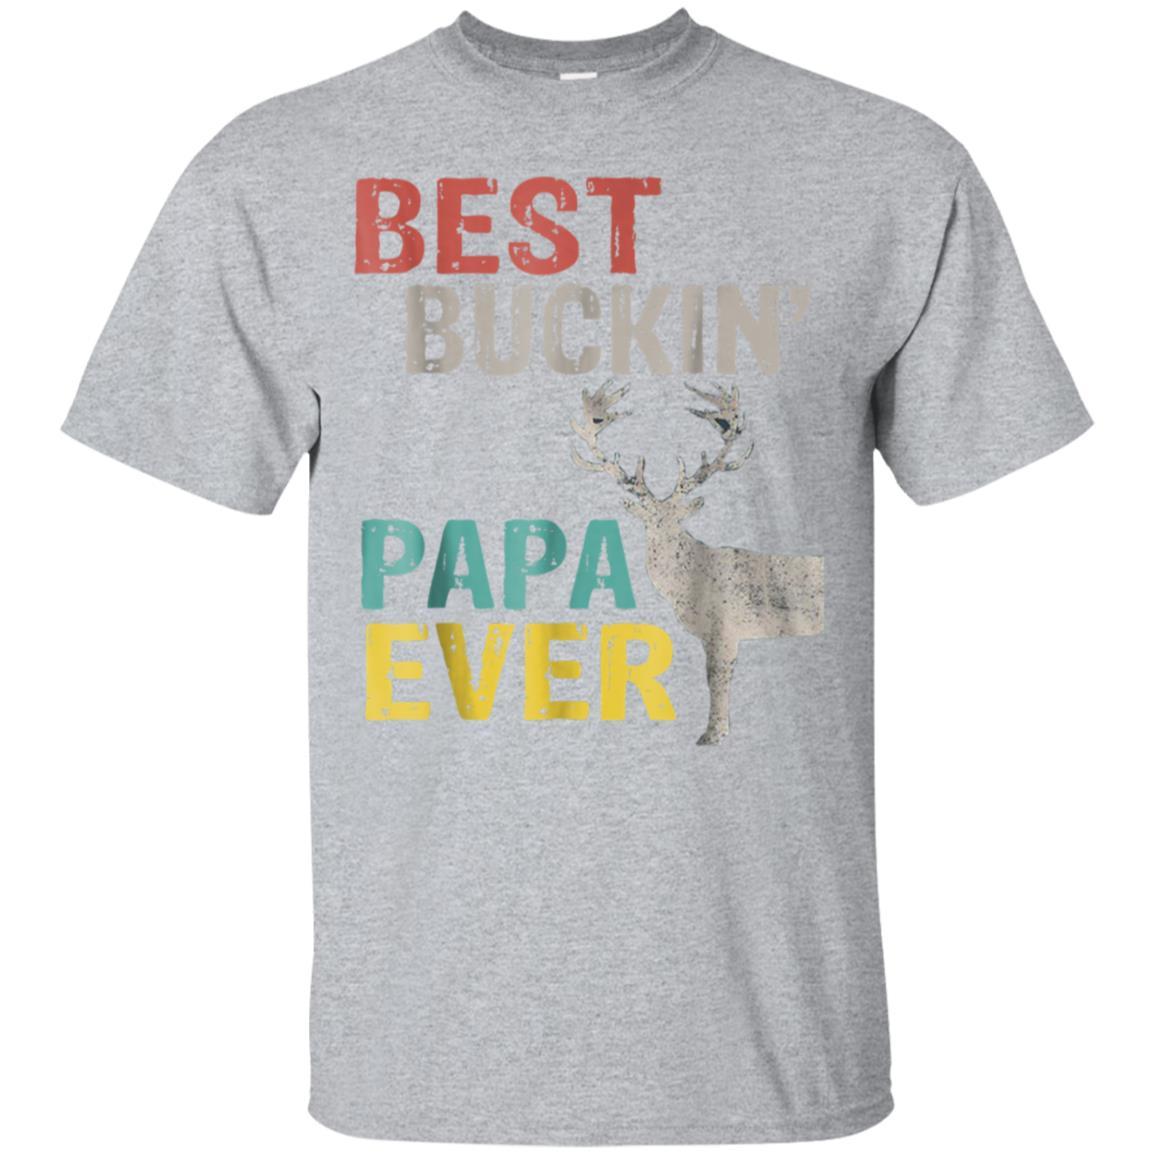 Best Buckin' Papa Ever Shirt Deer Hunting Bucking Father 99promocode